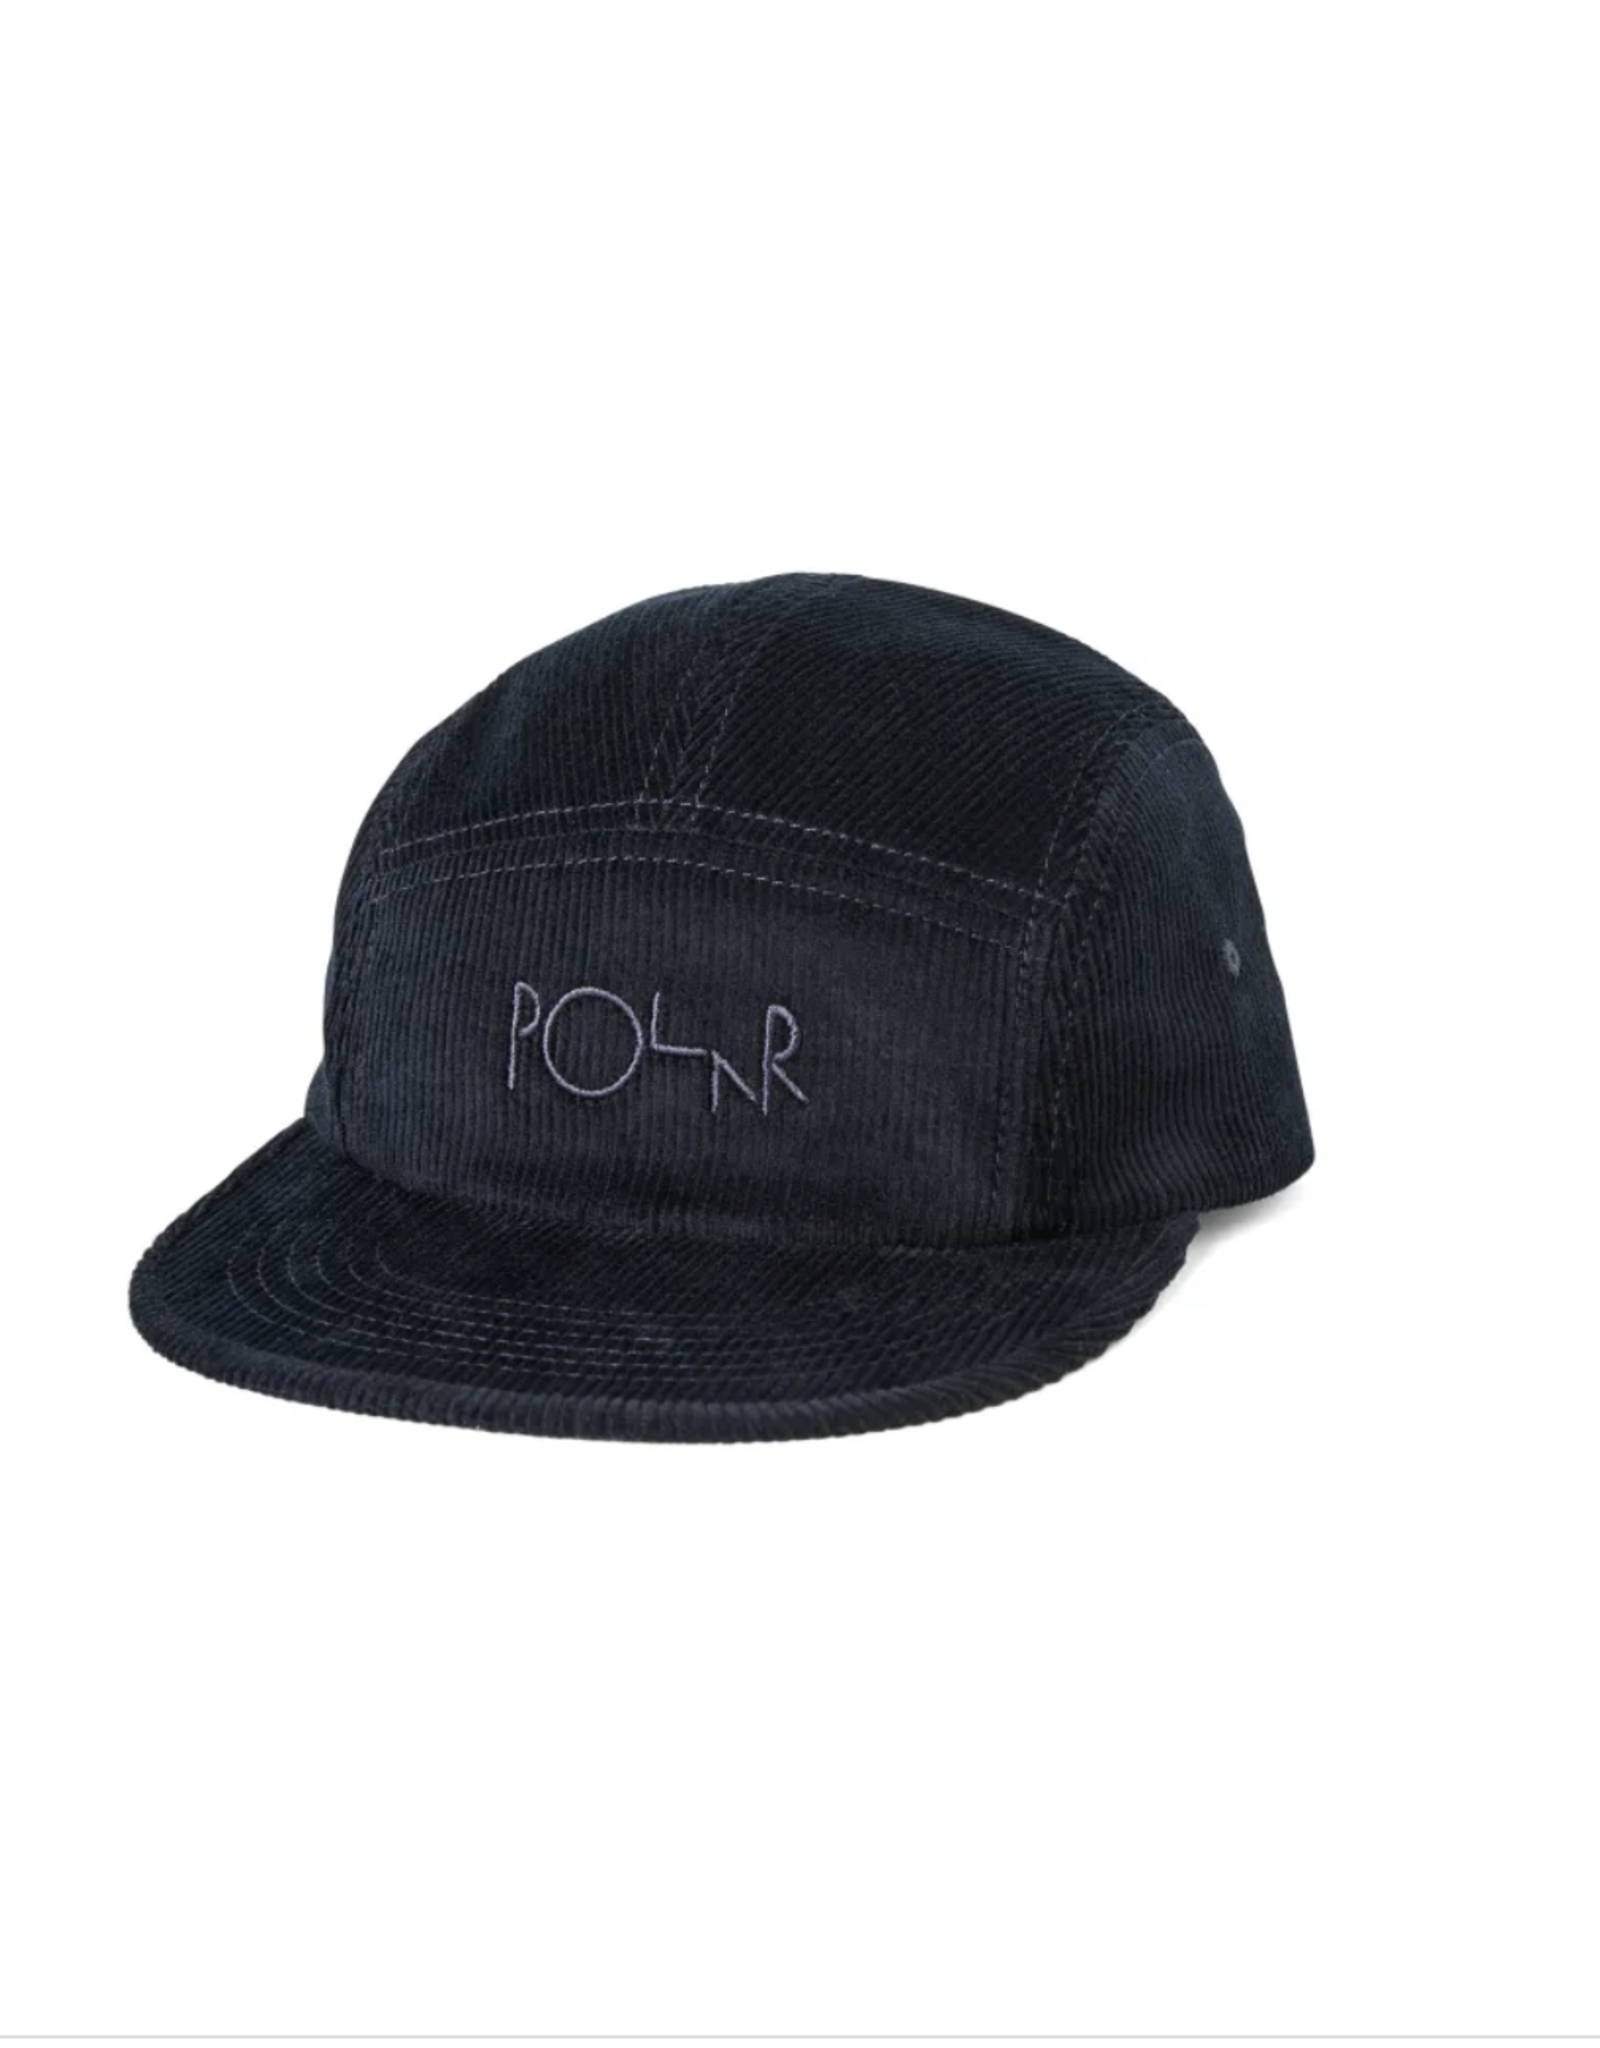 POLAR CORD SPEED CAP HAT - BLACK